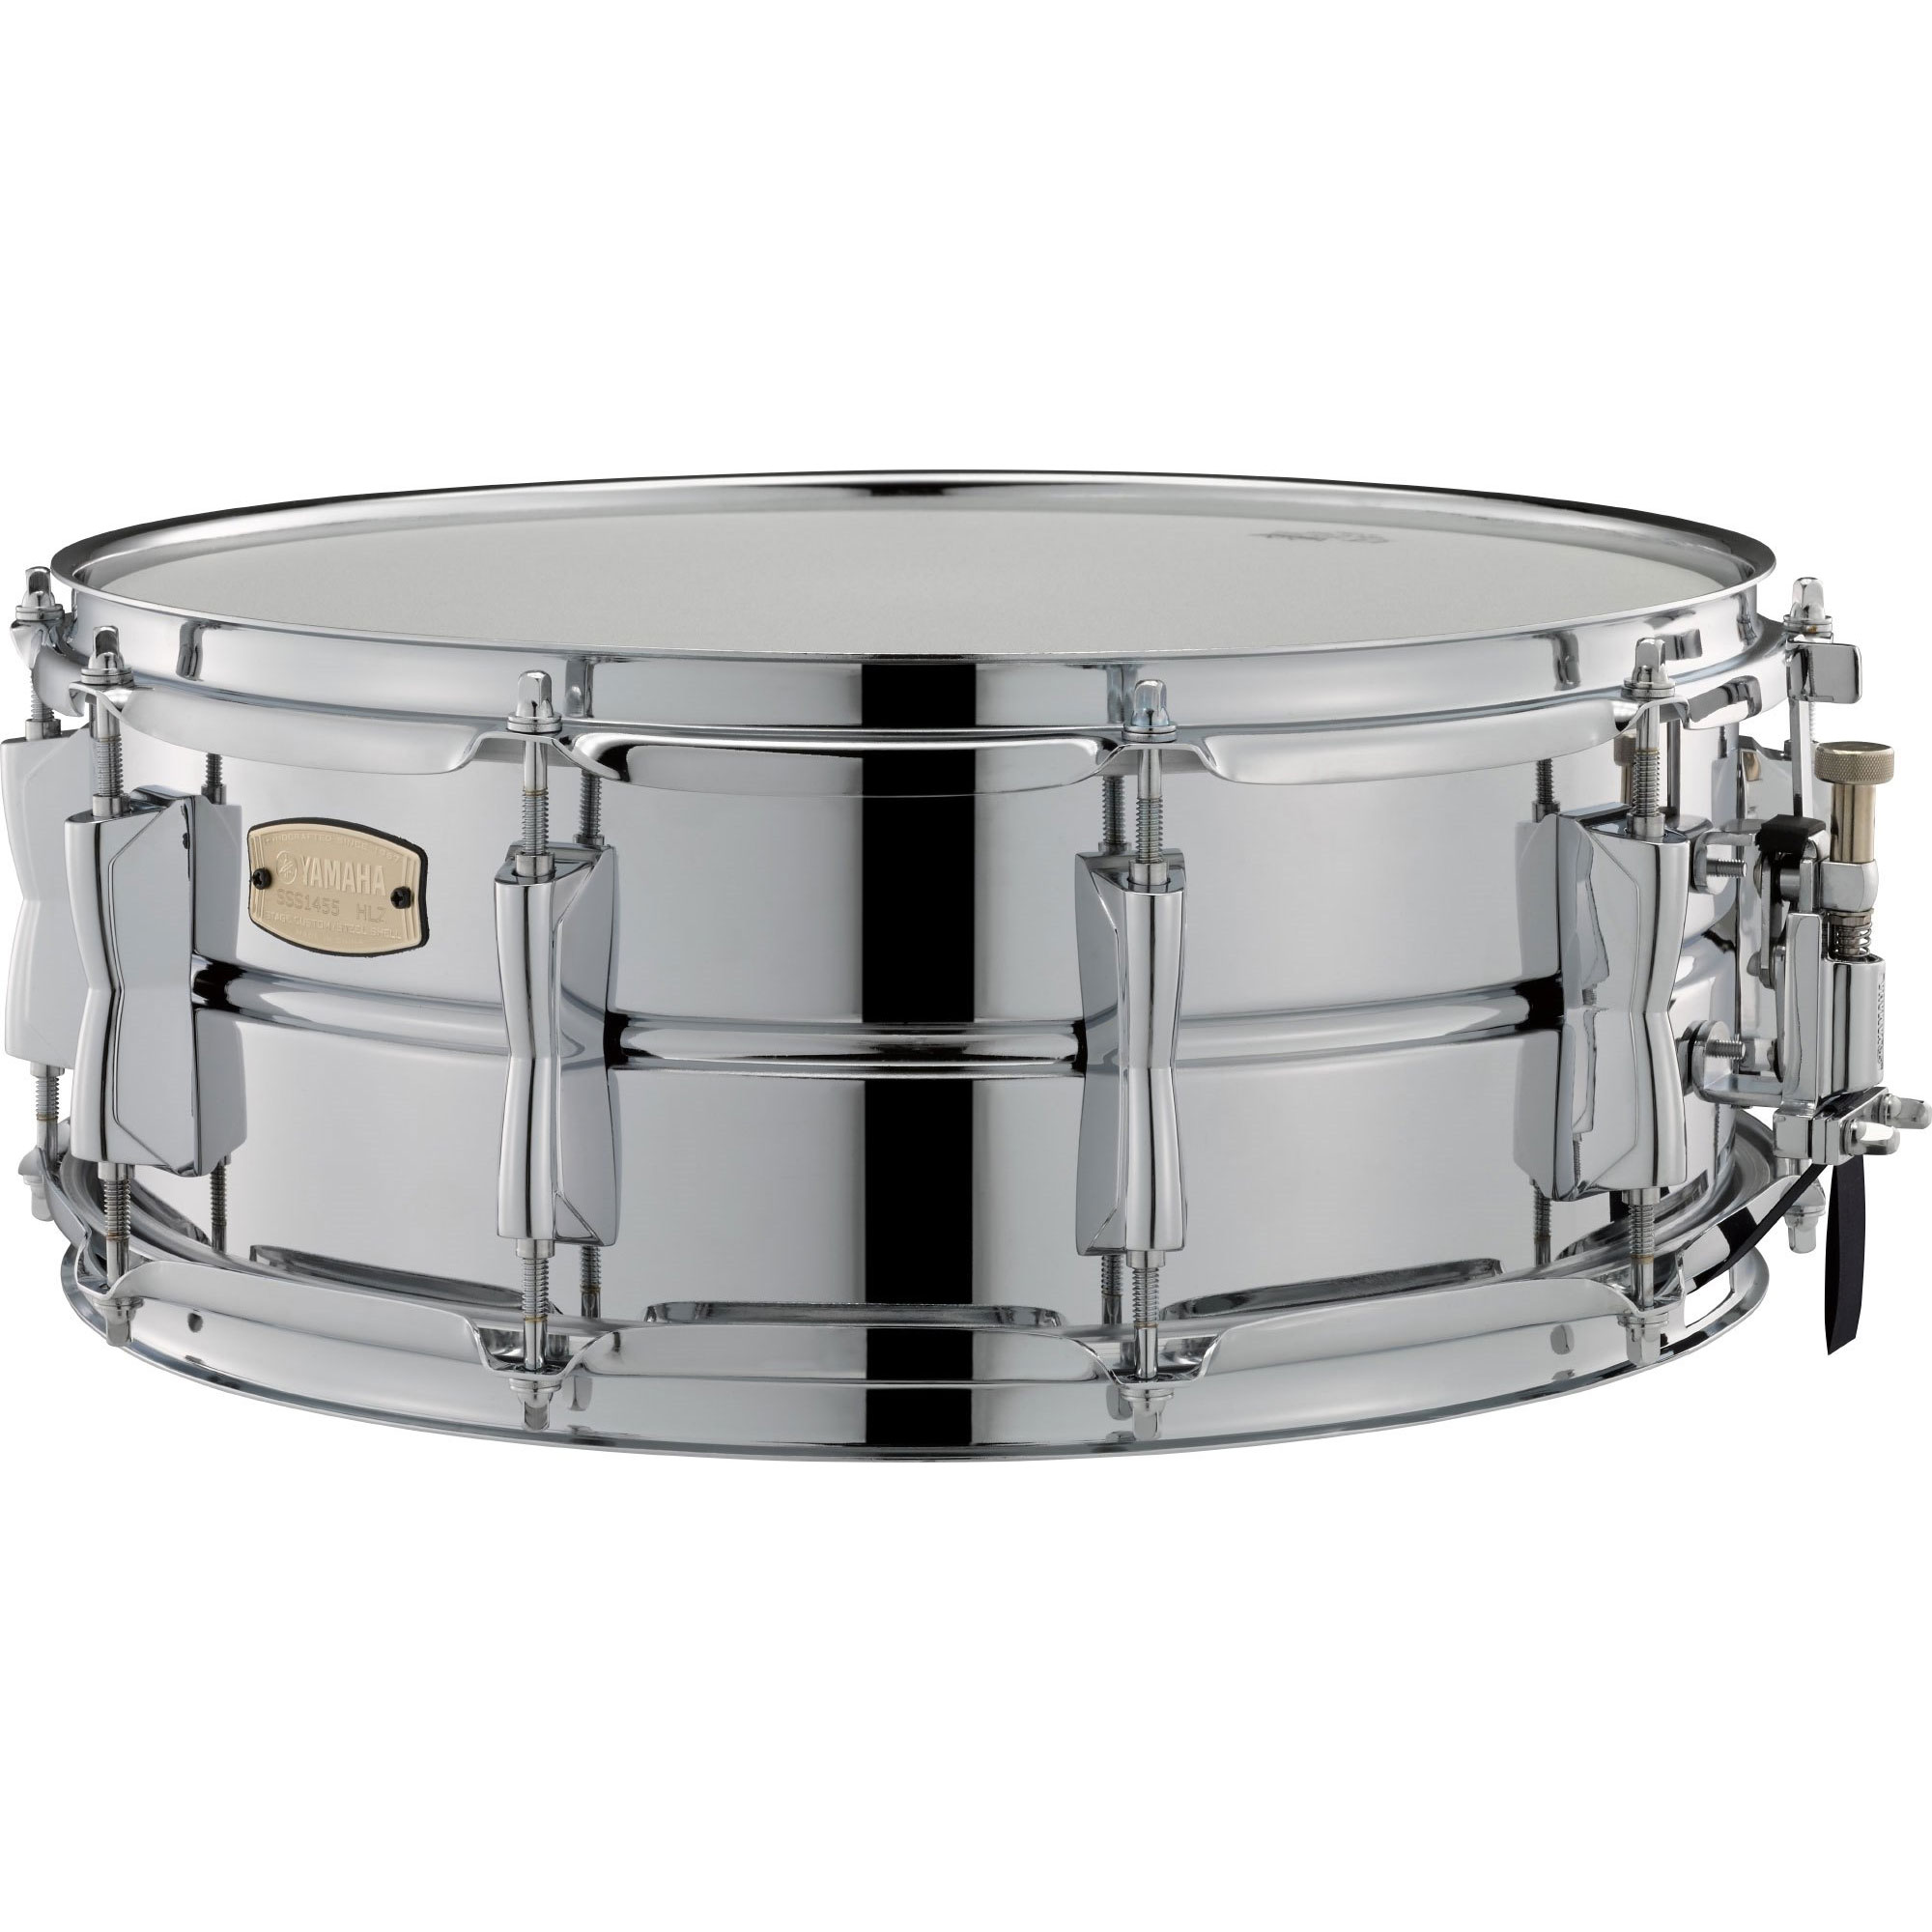 "Yamaha 14"" x 5.5"" Stage Custom Steel Snare Drum"